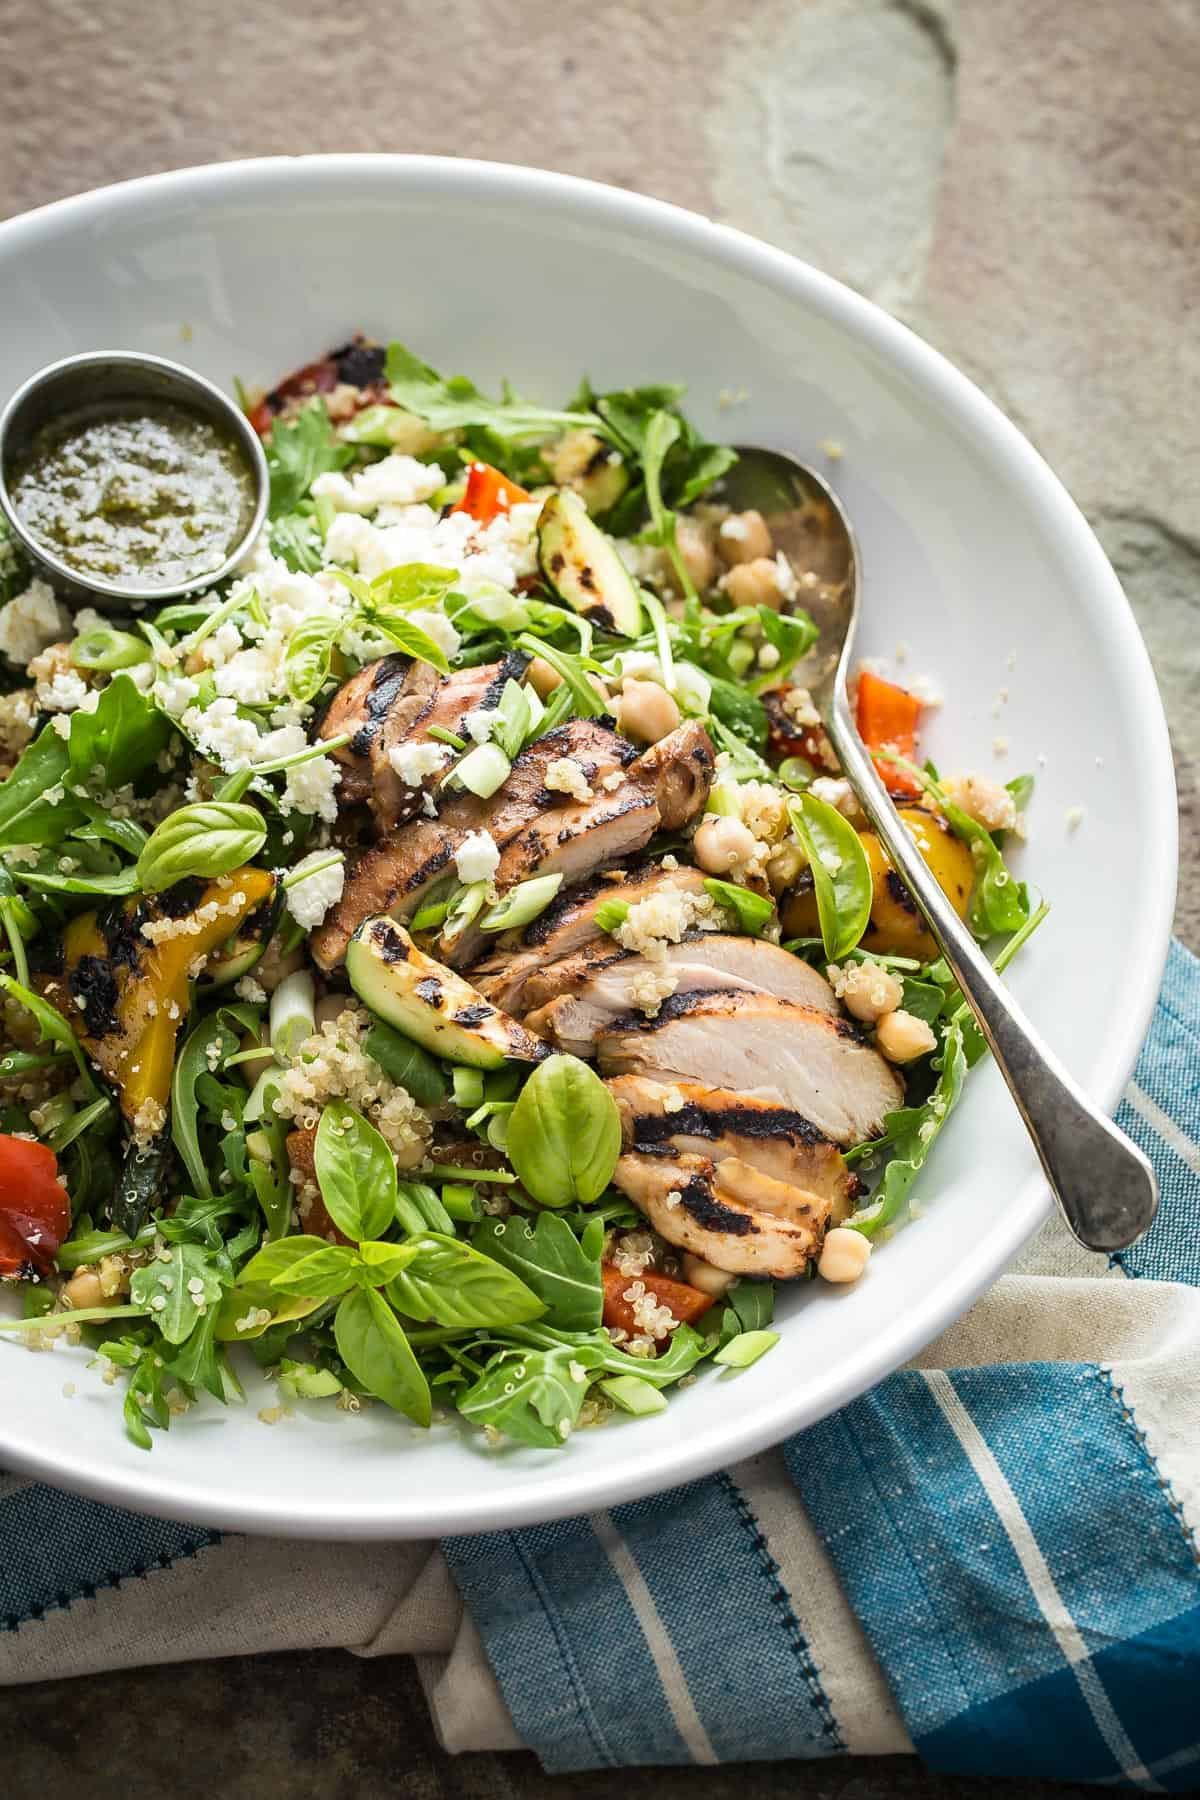 A super healthy Quinoa Vegetable Salad loaded with grilled chicken, arugula, grilled veggies, garbanzo beans and feta cheese. This should be on your New Year's resolutions menu!